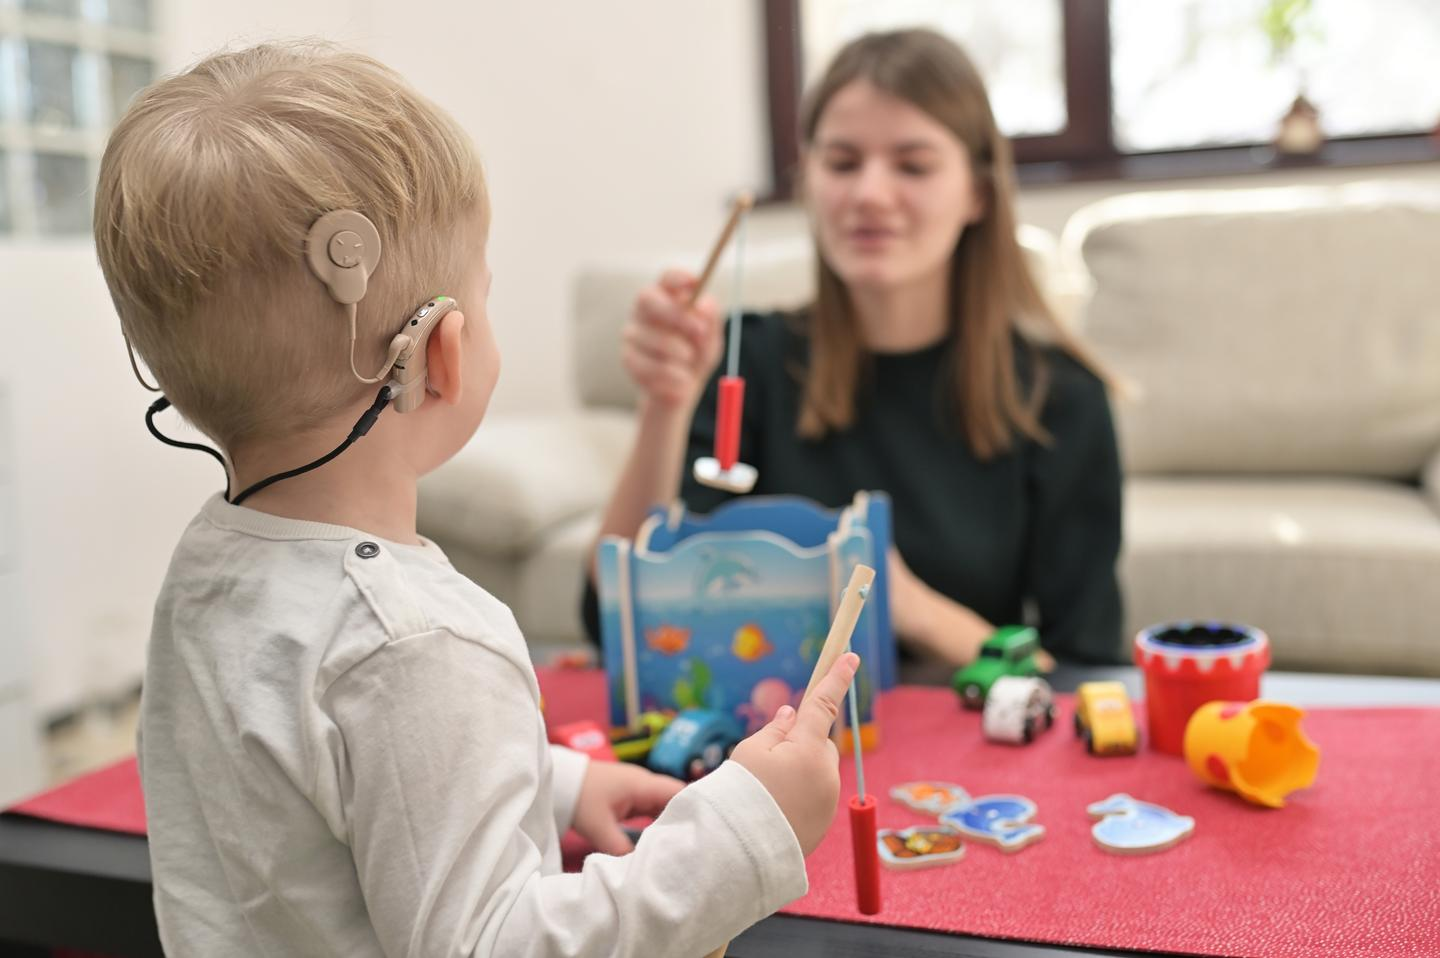 A child with conventional cochlear implants